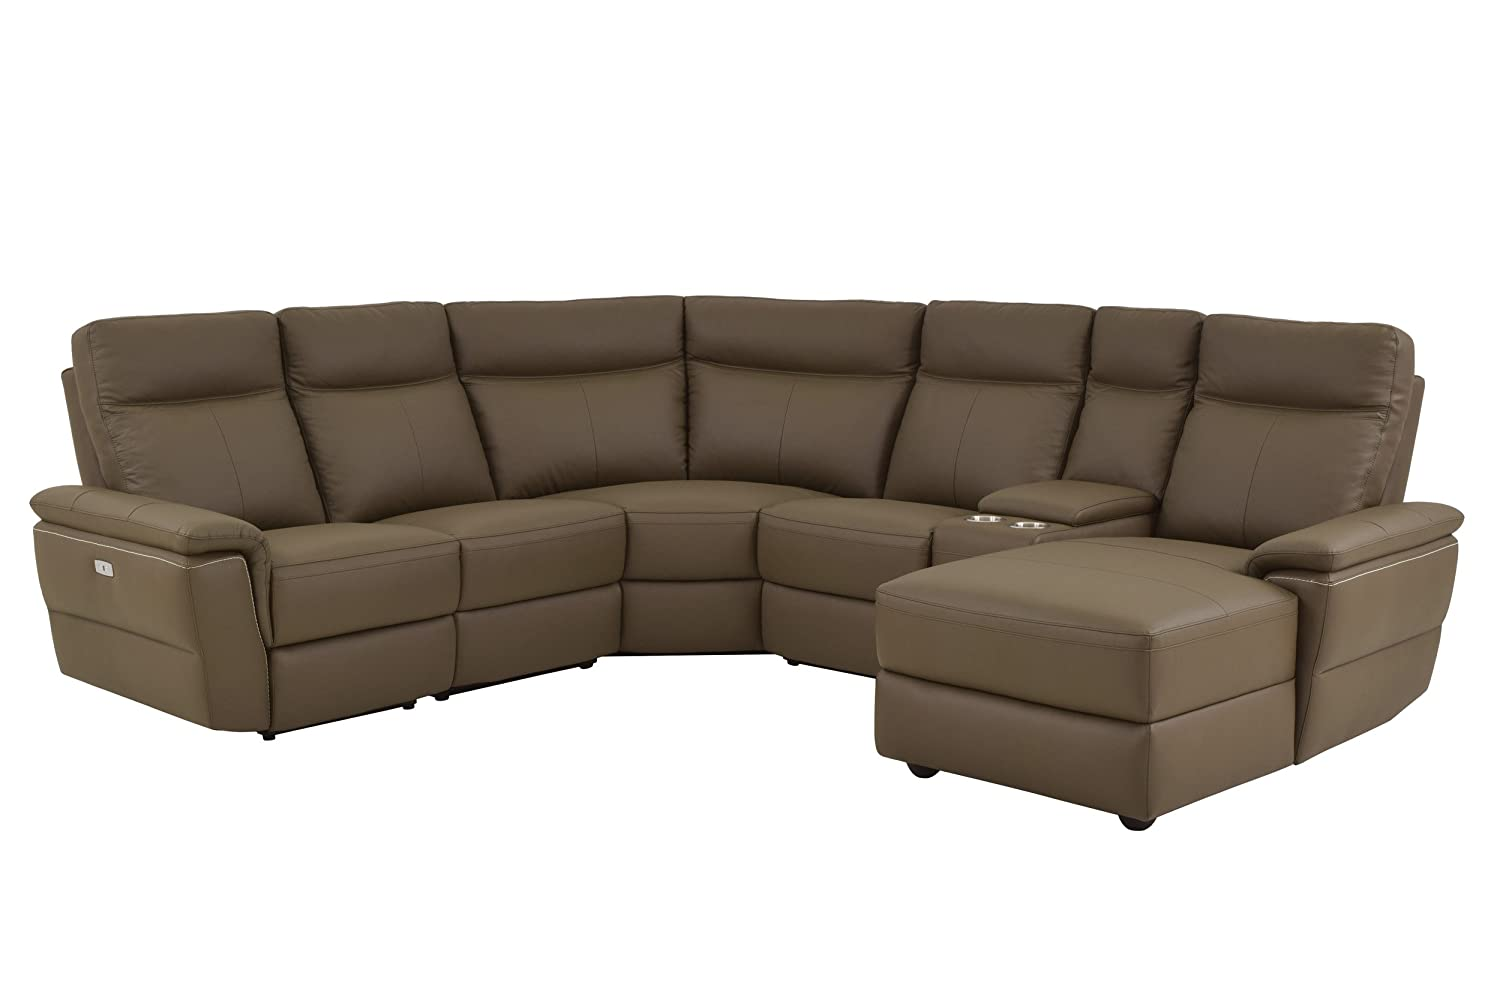 Homelegance Olympia 6-Piece Power Reclining Sectional Sofa with Left Side  Chaise, USB Charging Port and Cup Holder Console Top Grain Leather Match,  ...